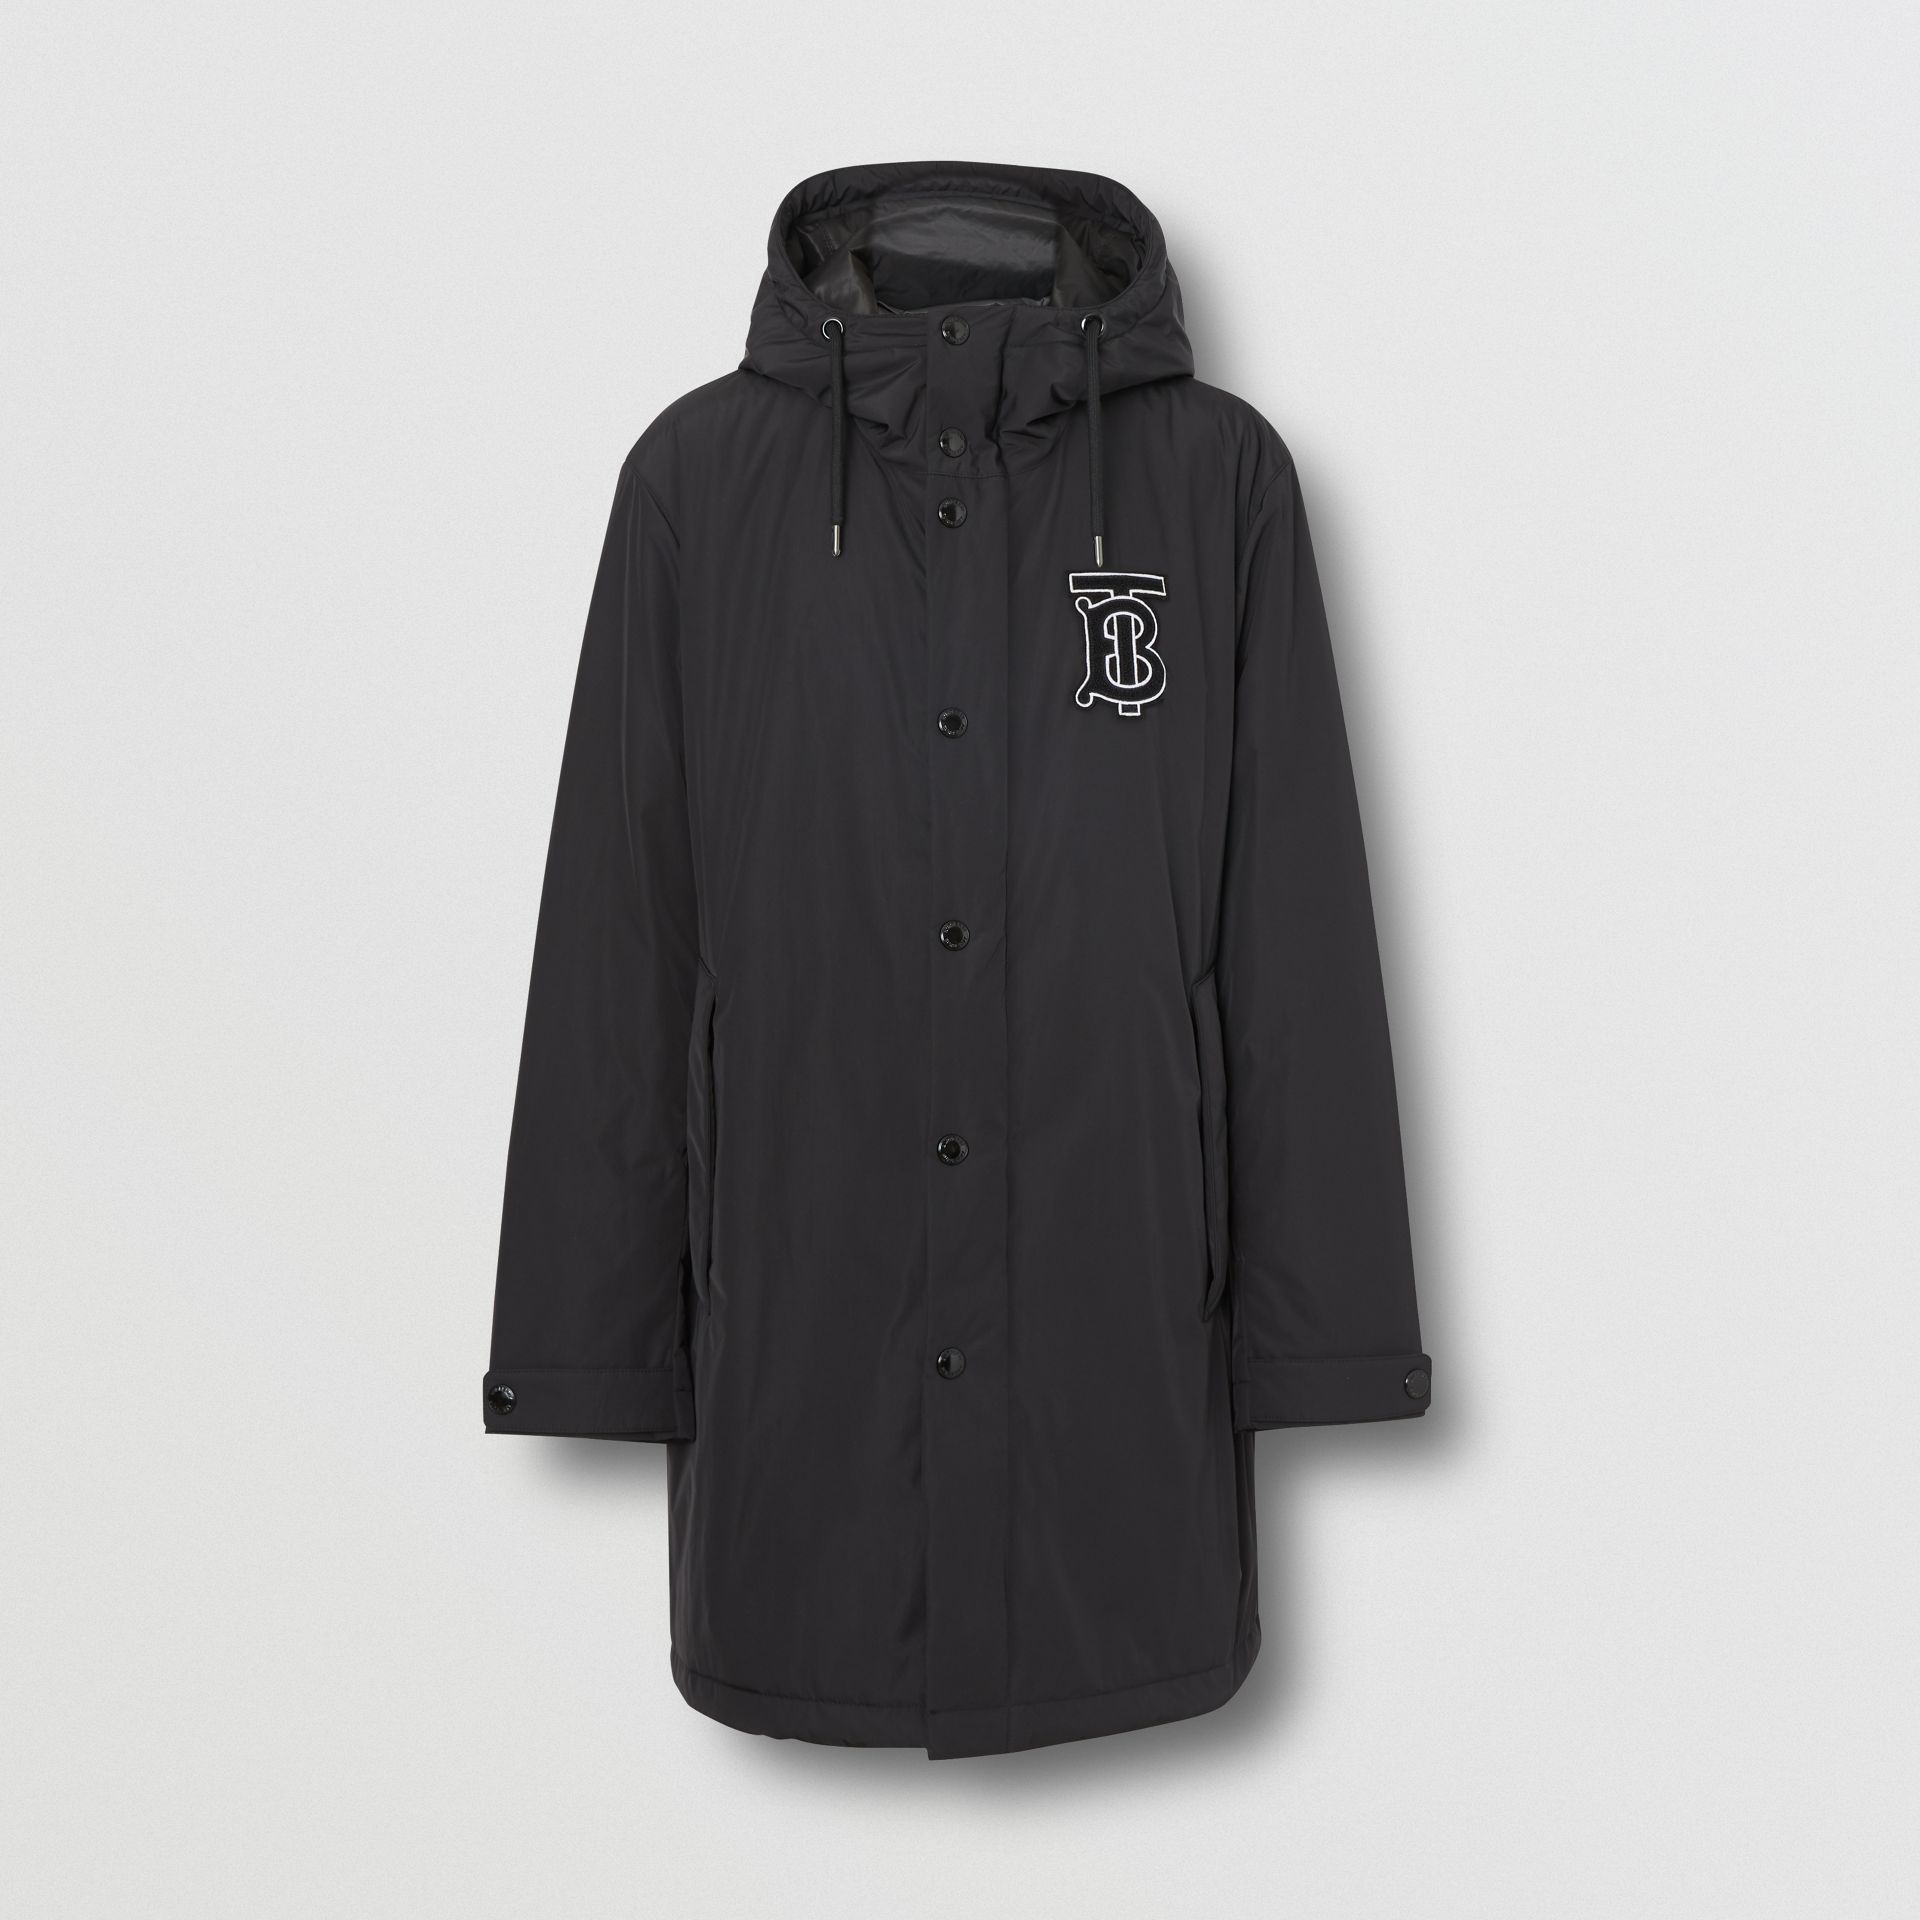 Monogram Motif Nylon Twill Hooded Coat in Black - Men | Burberry Canada - gallery image 3